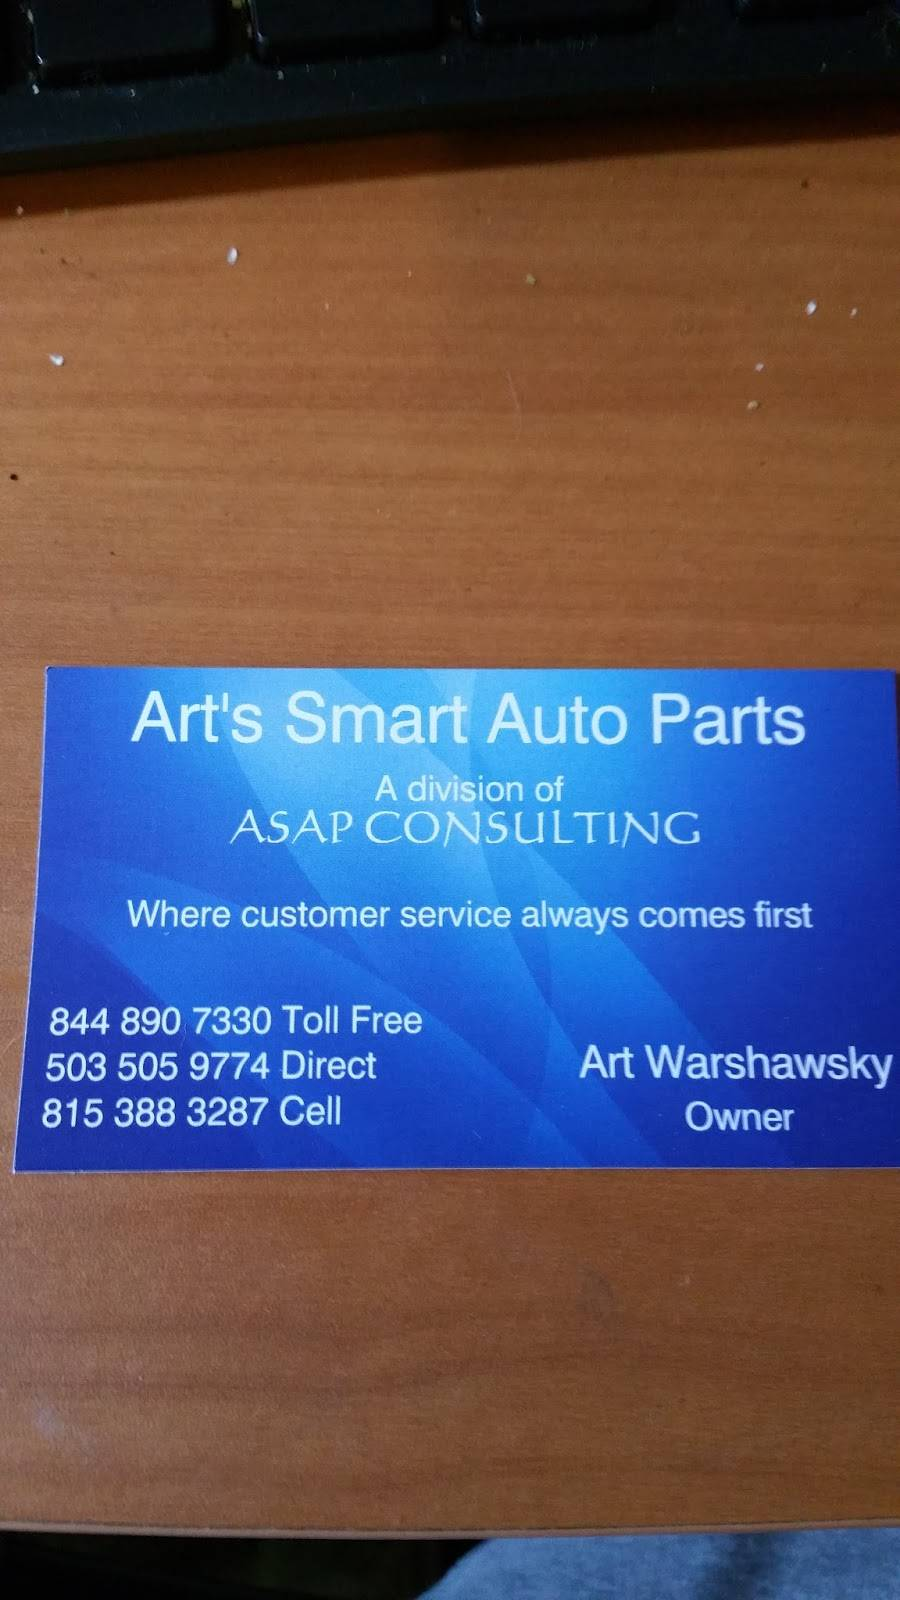 Arts Smart Auto Parts - car repair  | Photo 1 of 6 | Address: 303 NE Tomahawk Island Dr, Portland, OR 97217, USA | Phone: (844) 890-7330